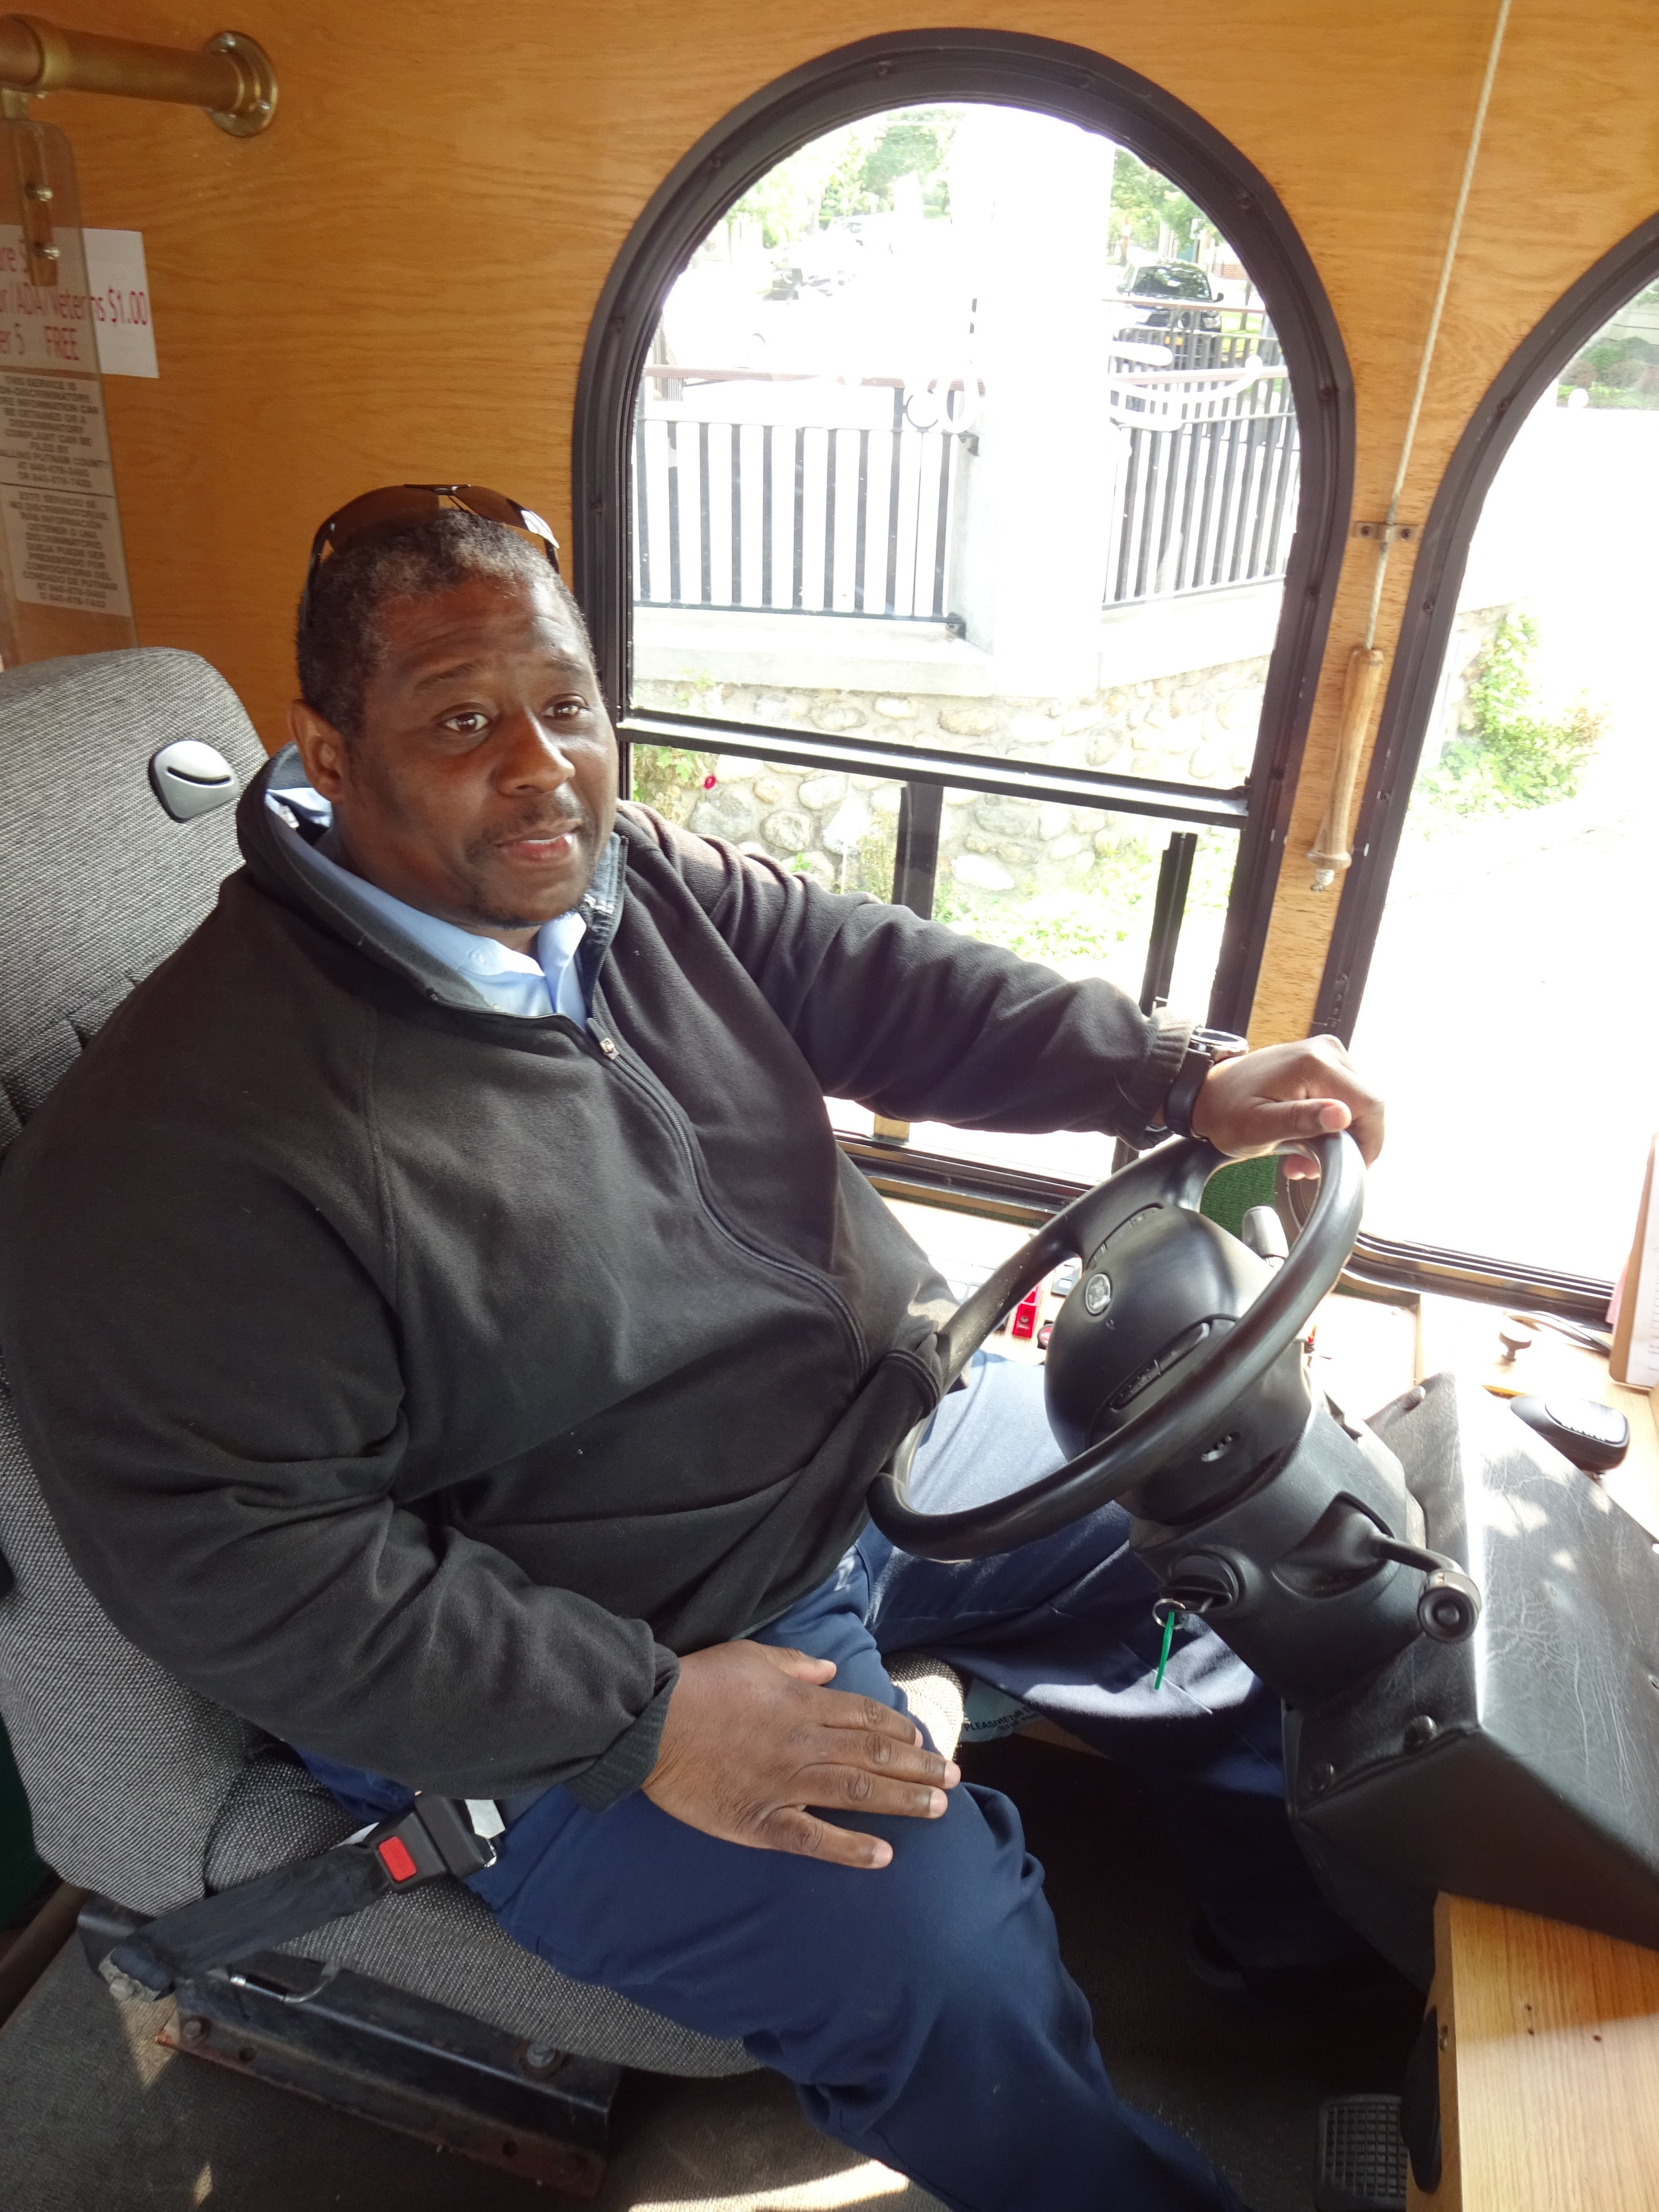 Hi Tim! - Meet Tim, the Trolley Driver. He picks up and drops off riders along the trolley route. He will stop anywhere along the route if a rider pulls the bell cord. Remember to always be kind and courteous to Tim as he drives you around the area.